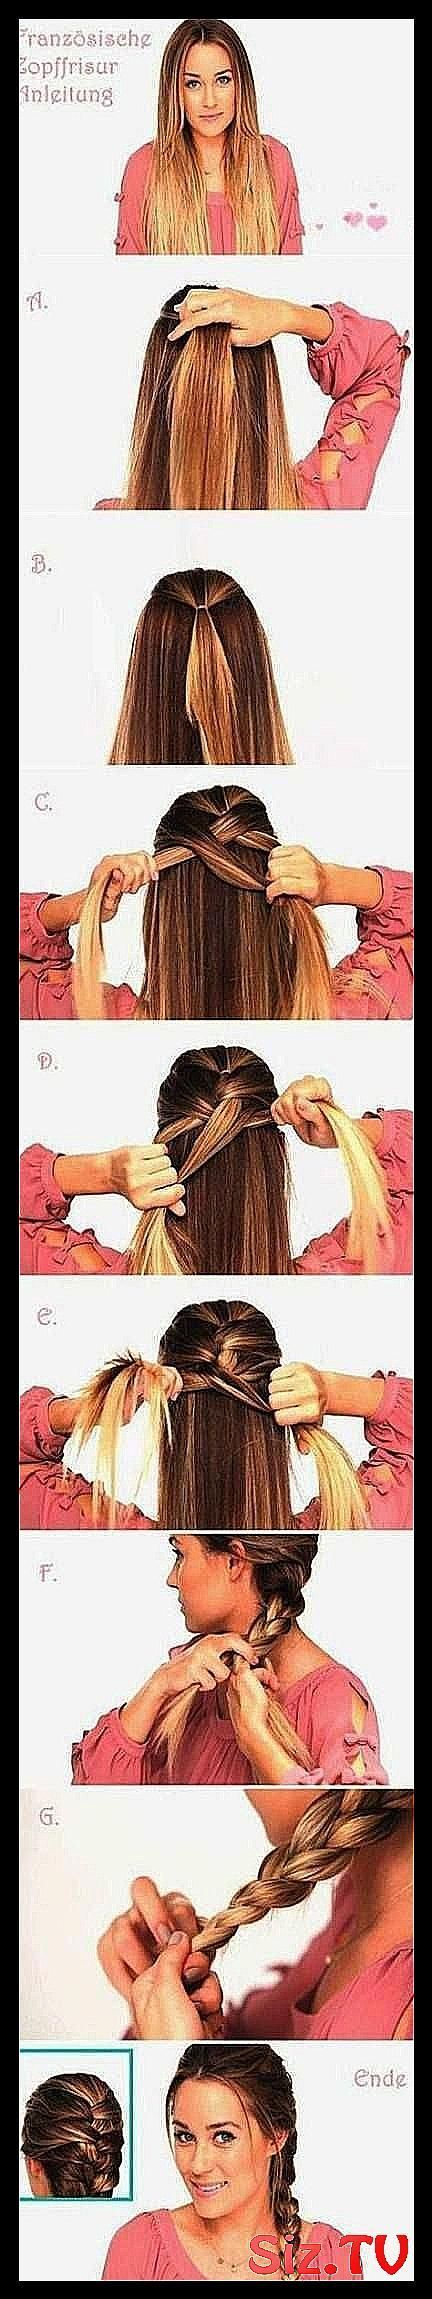 Super hairstyles long for school messy buns 23+ Ideas Super hairstyles long for school messy ... - #hairstyles #ideas #messy #school #super - -